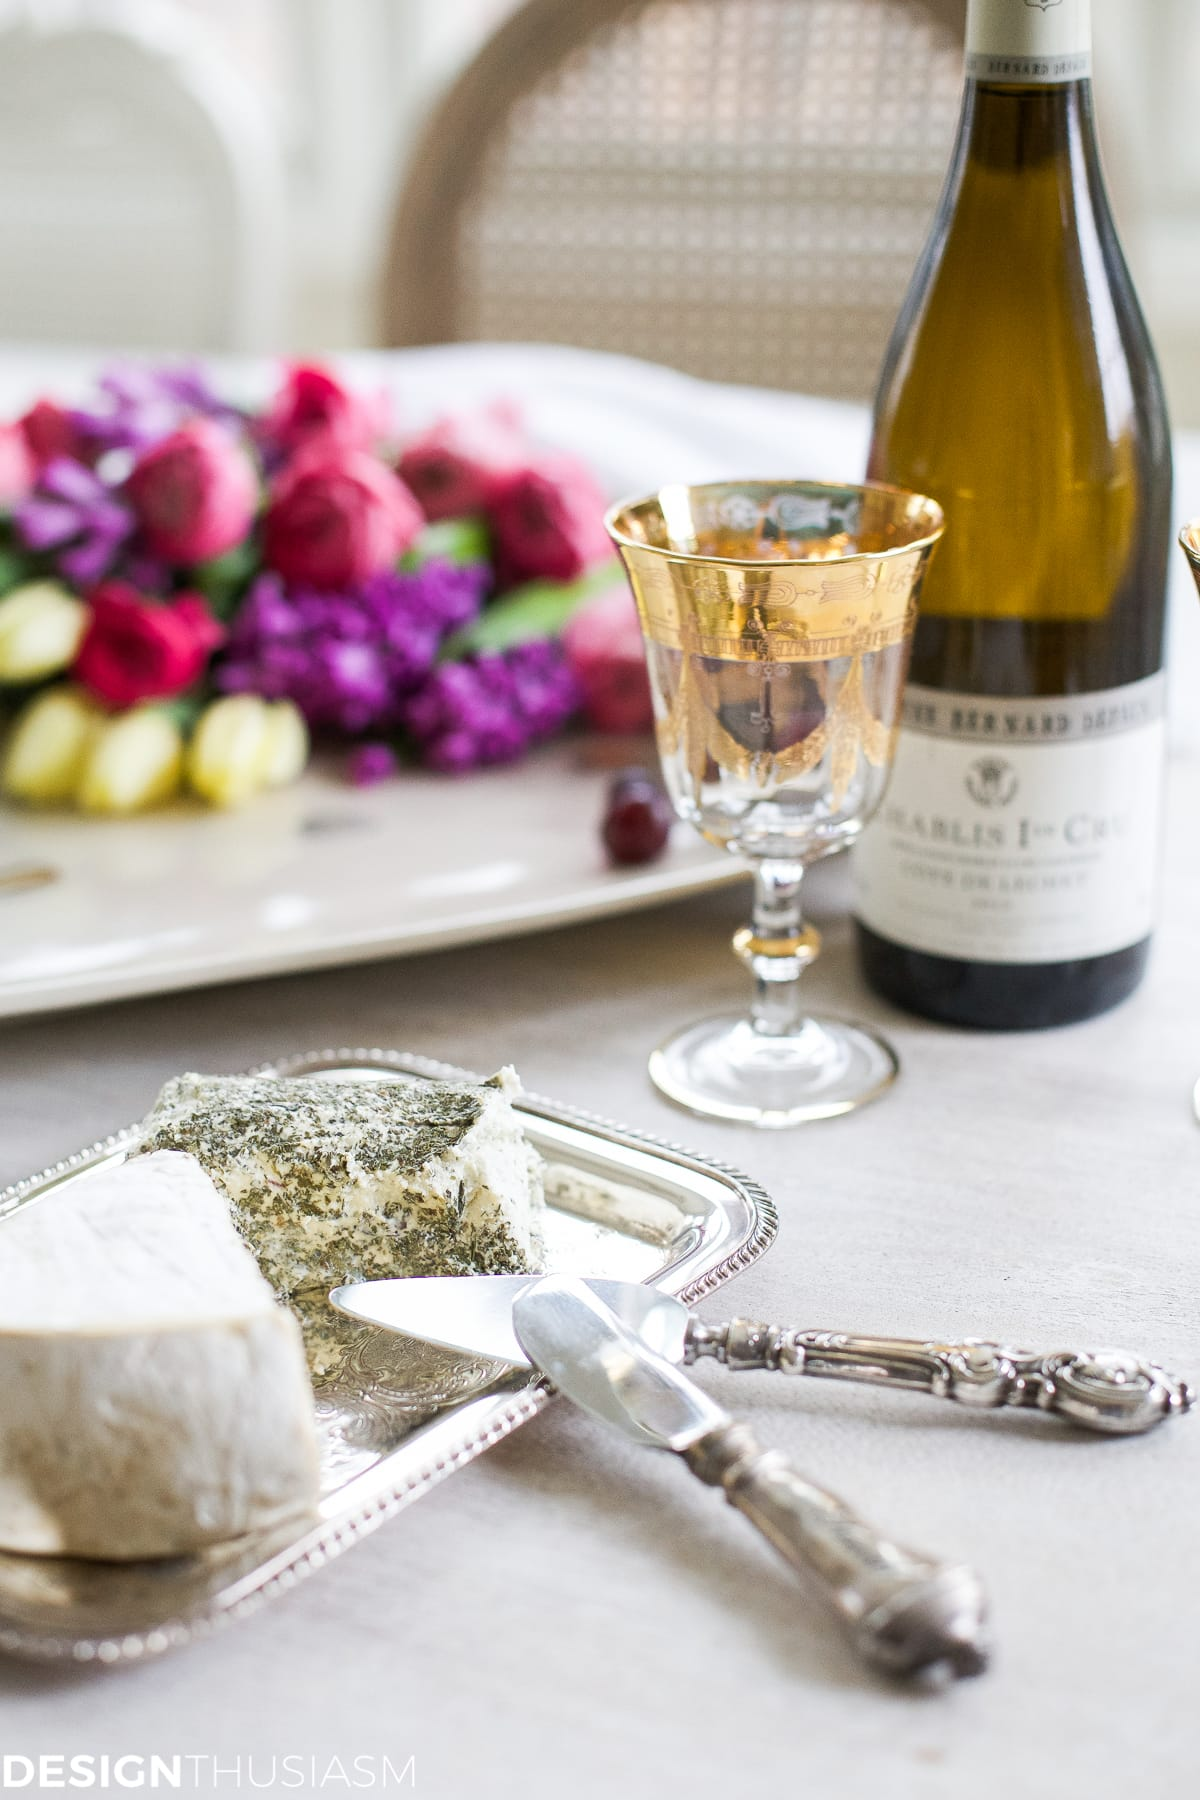 Wine and cheese party: easy entertaining for drop-in guests | Designthusiasm.com